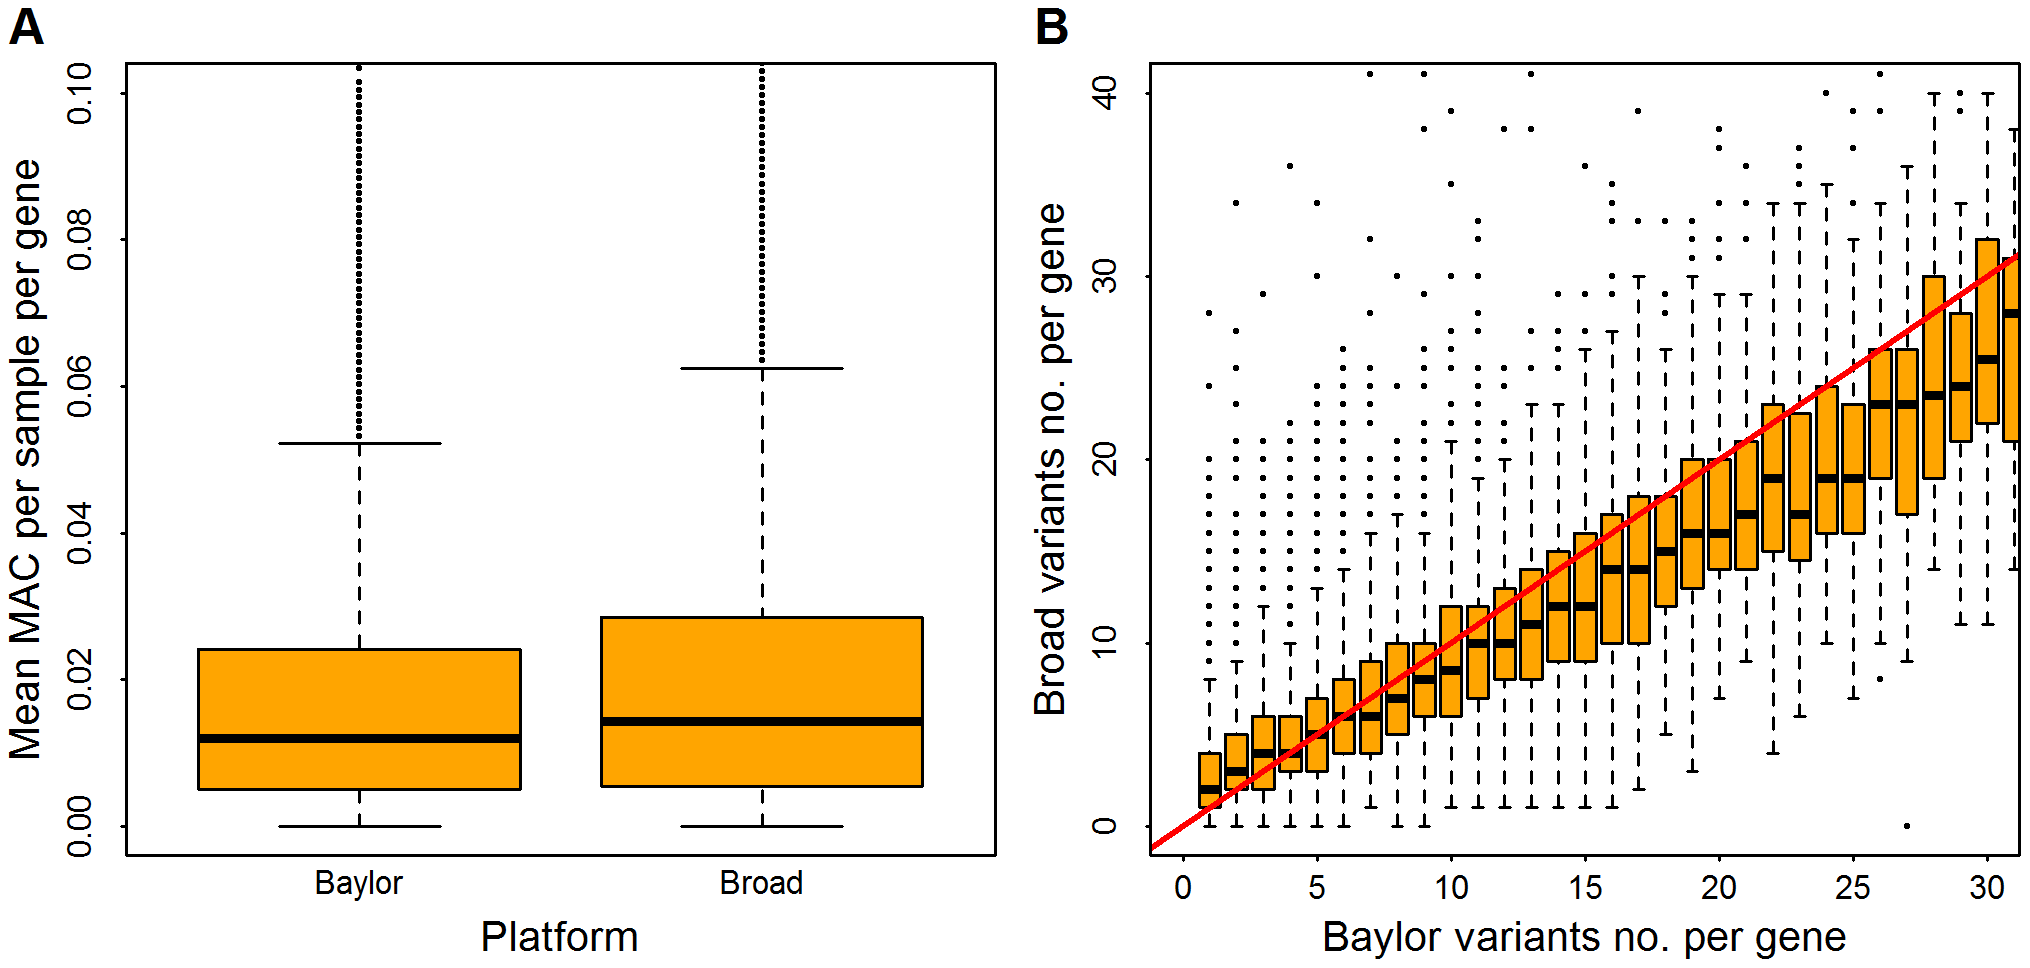 Distribution of rare variants per gene in Baylor and Broad data sets after filtering.